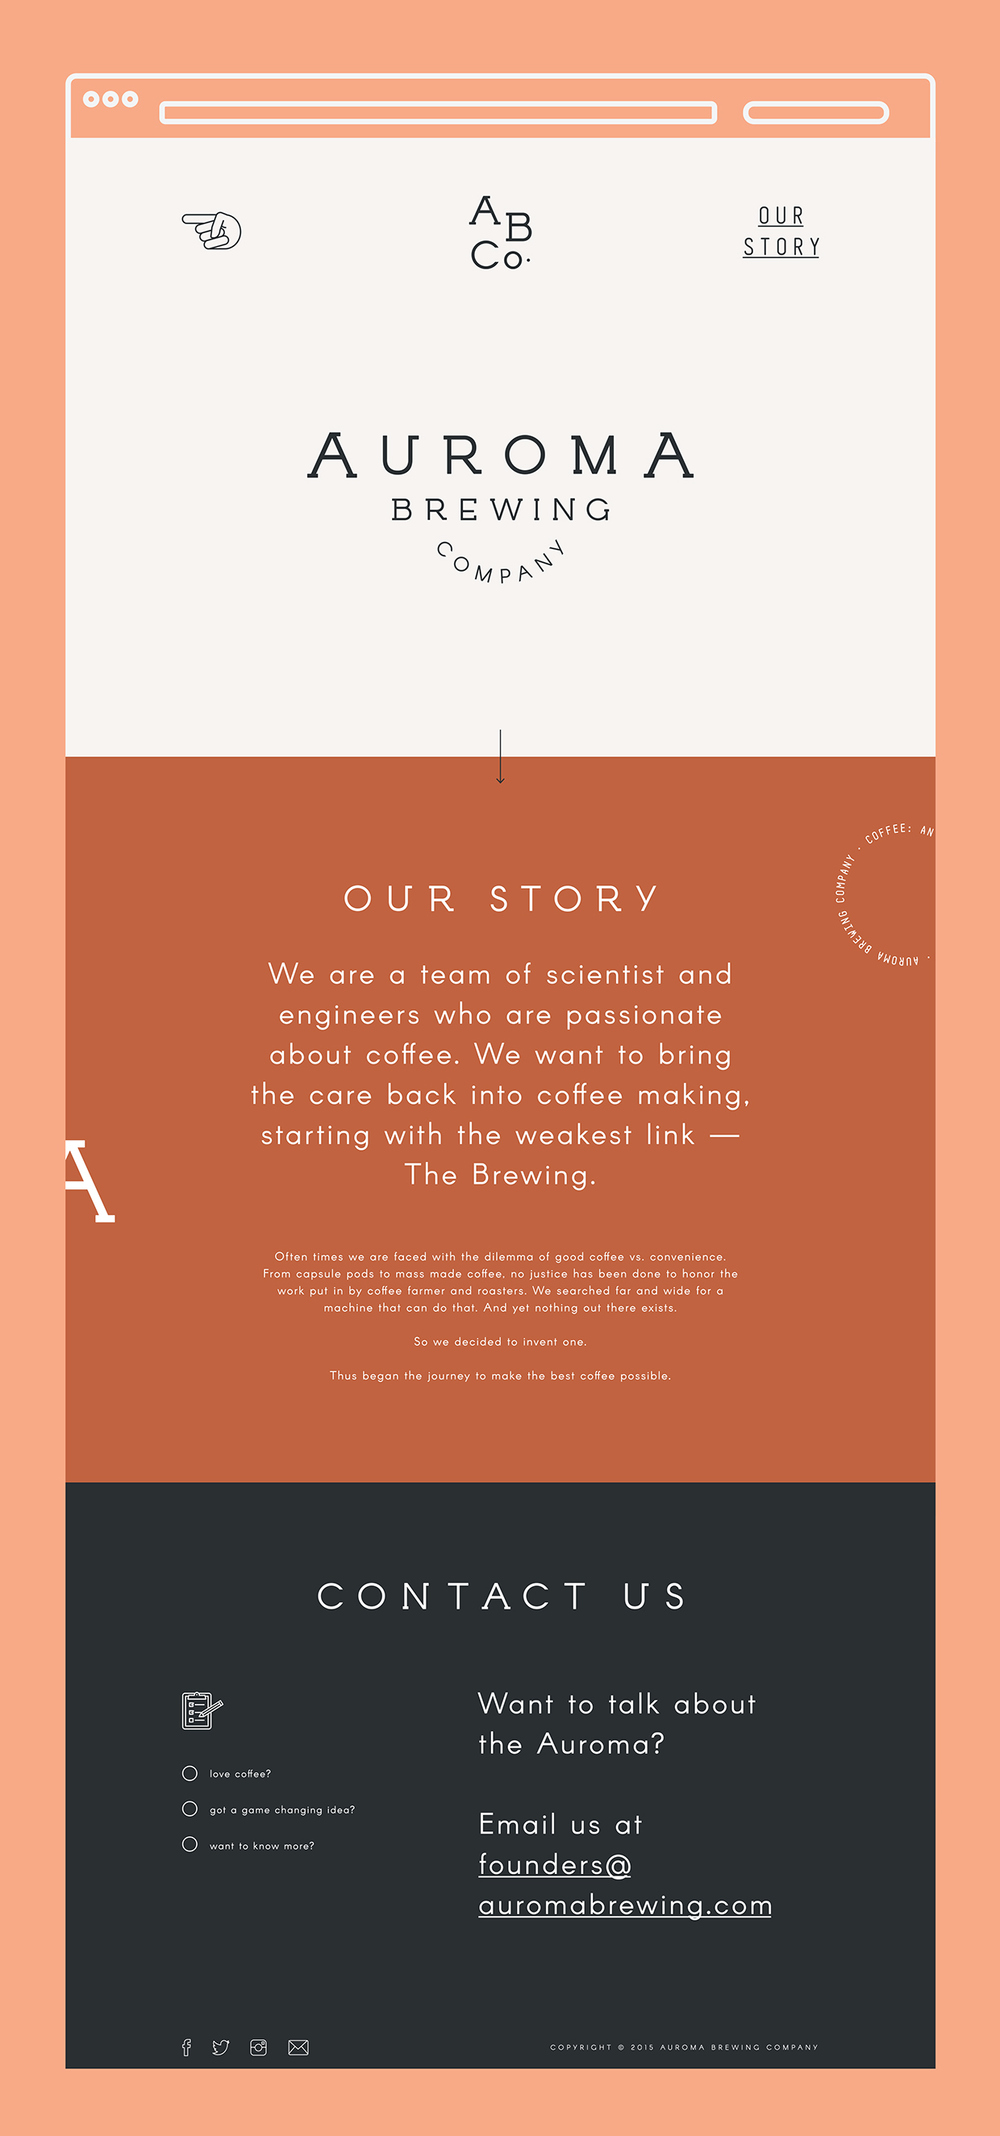 ODDDS / Auroma Brewing Co.